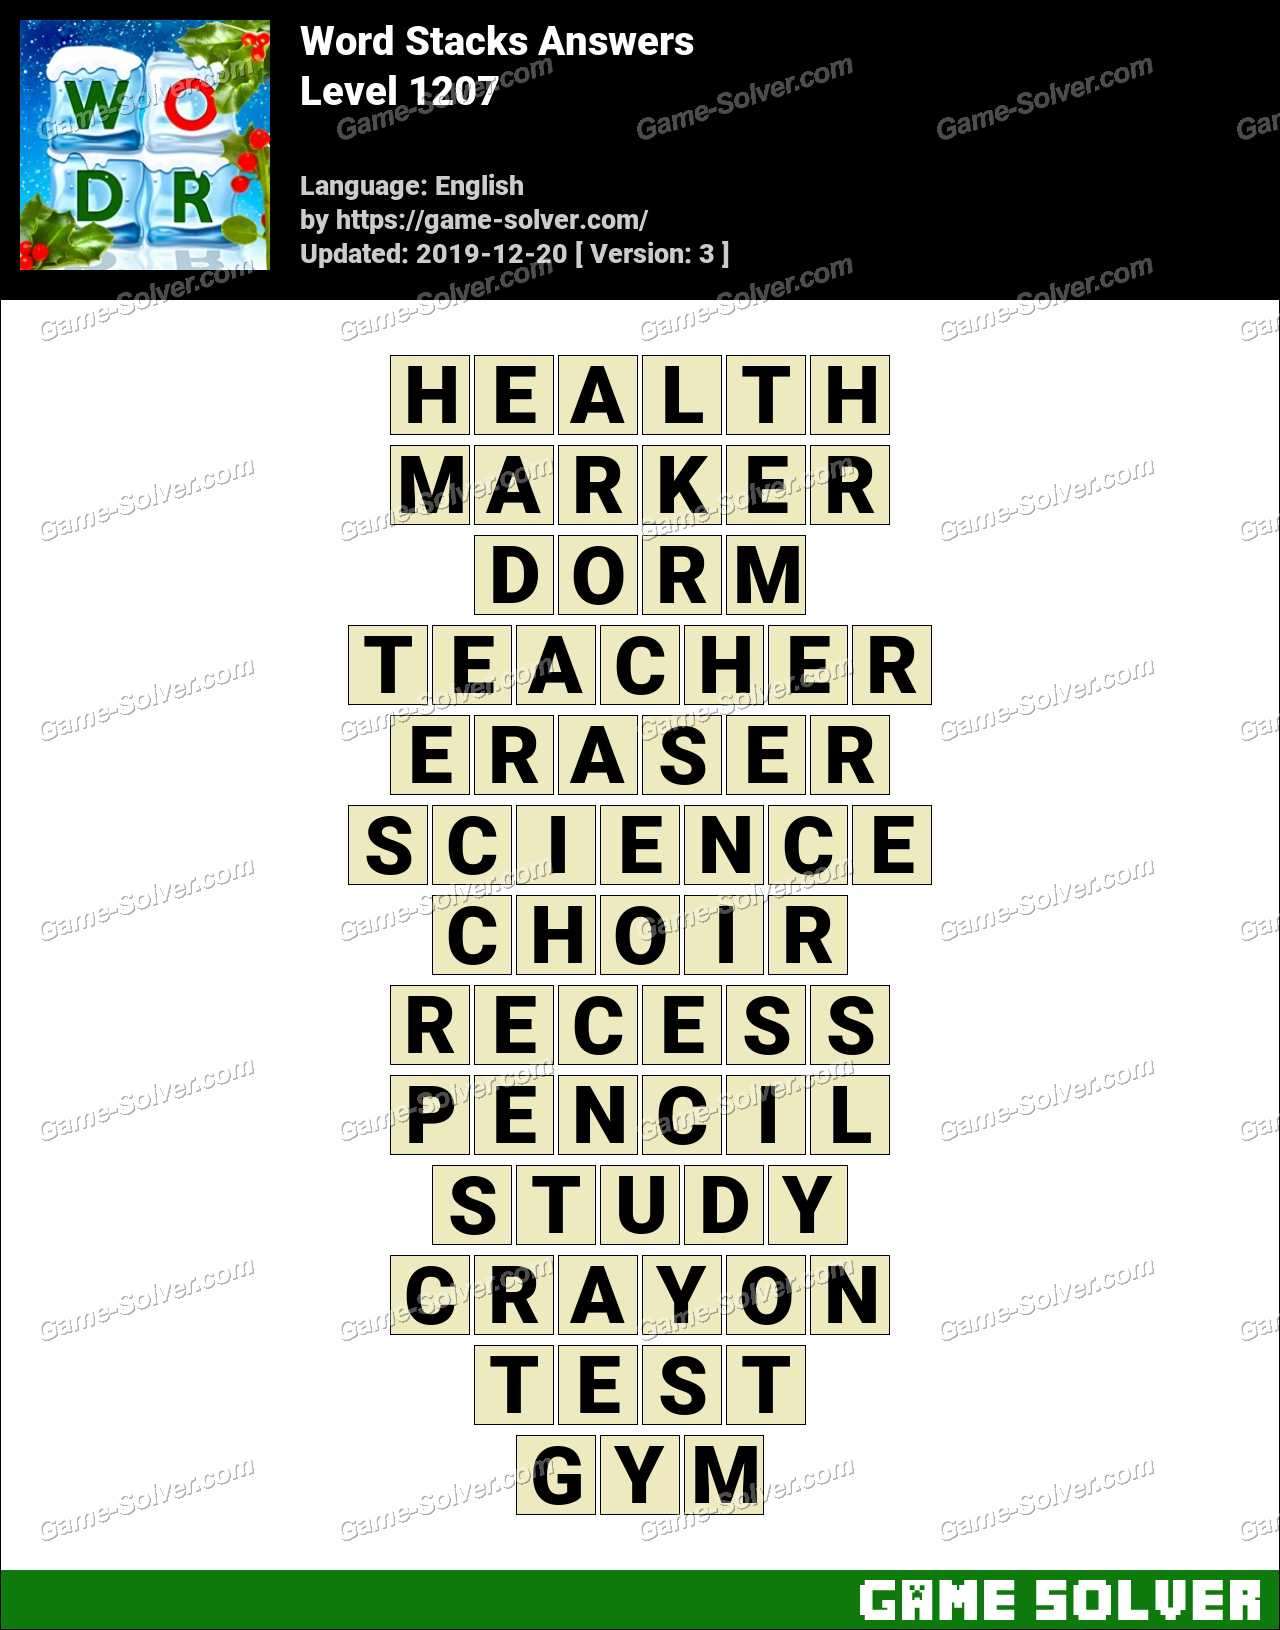 Word Stacks Level 1207 Answers